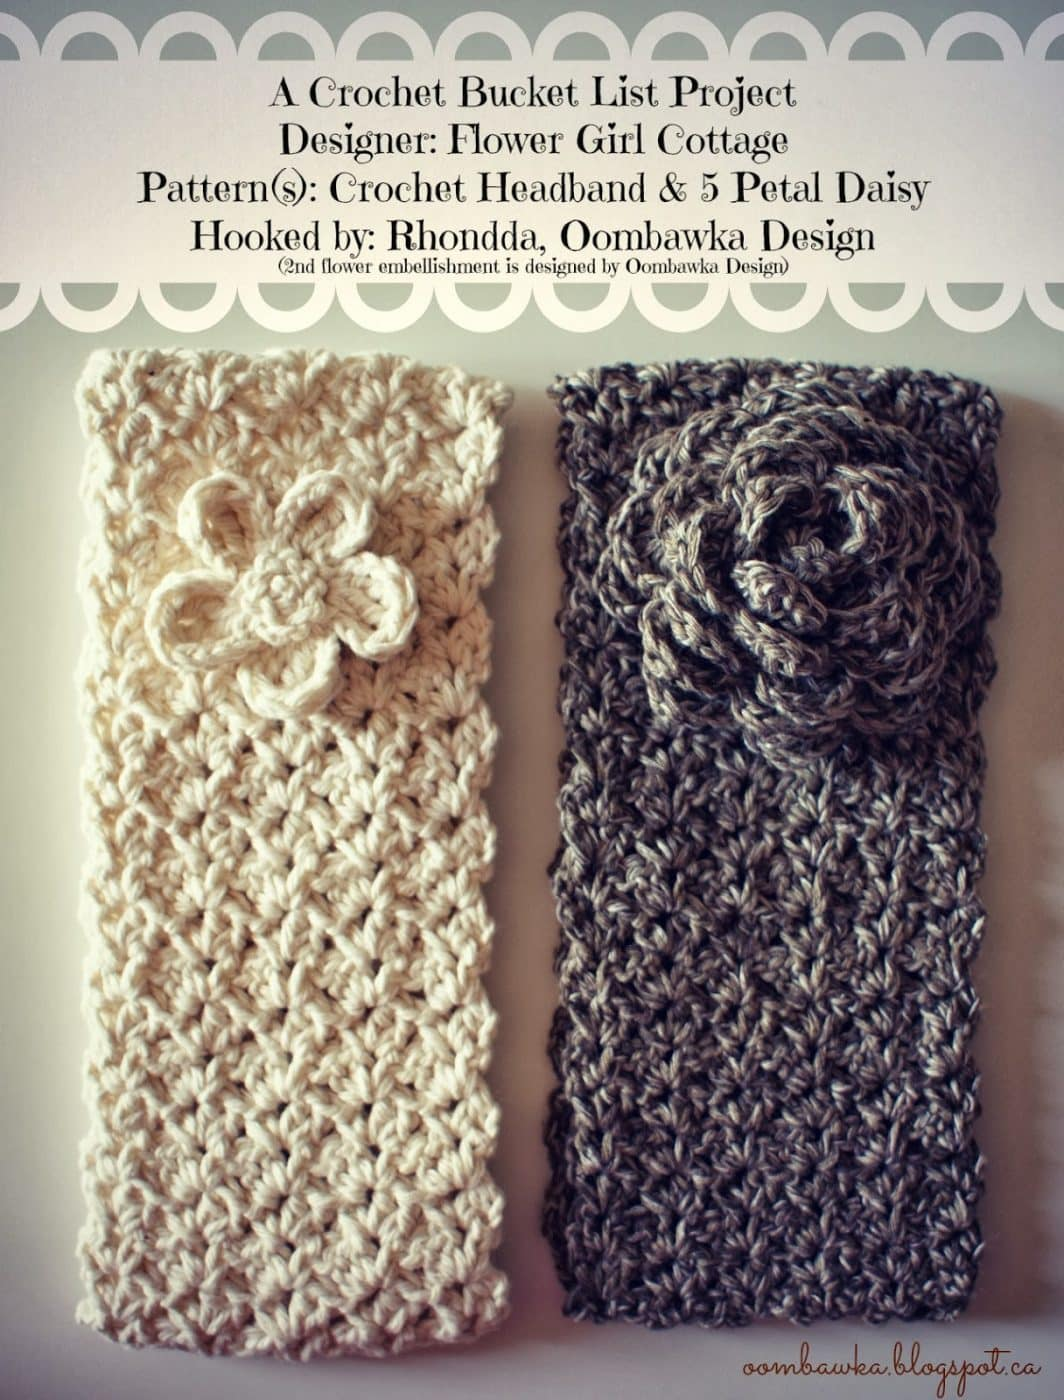 Free Crochet Pattern Flowers Headbands : Oombawka Design *Crochet*